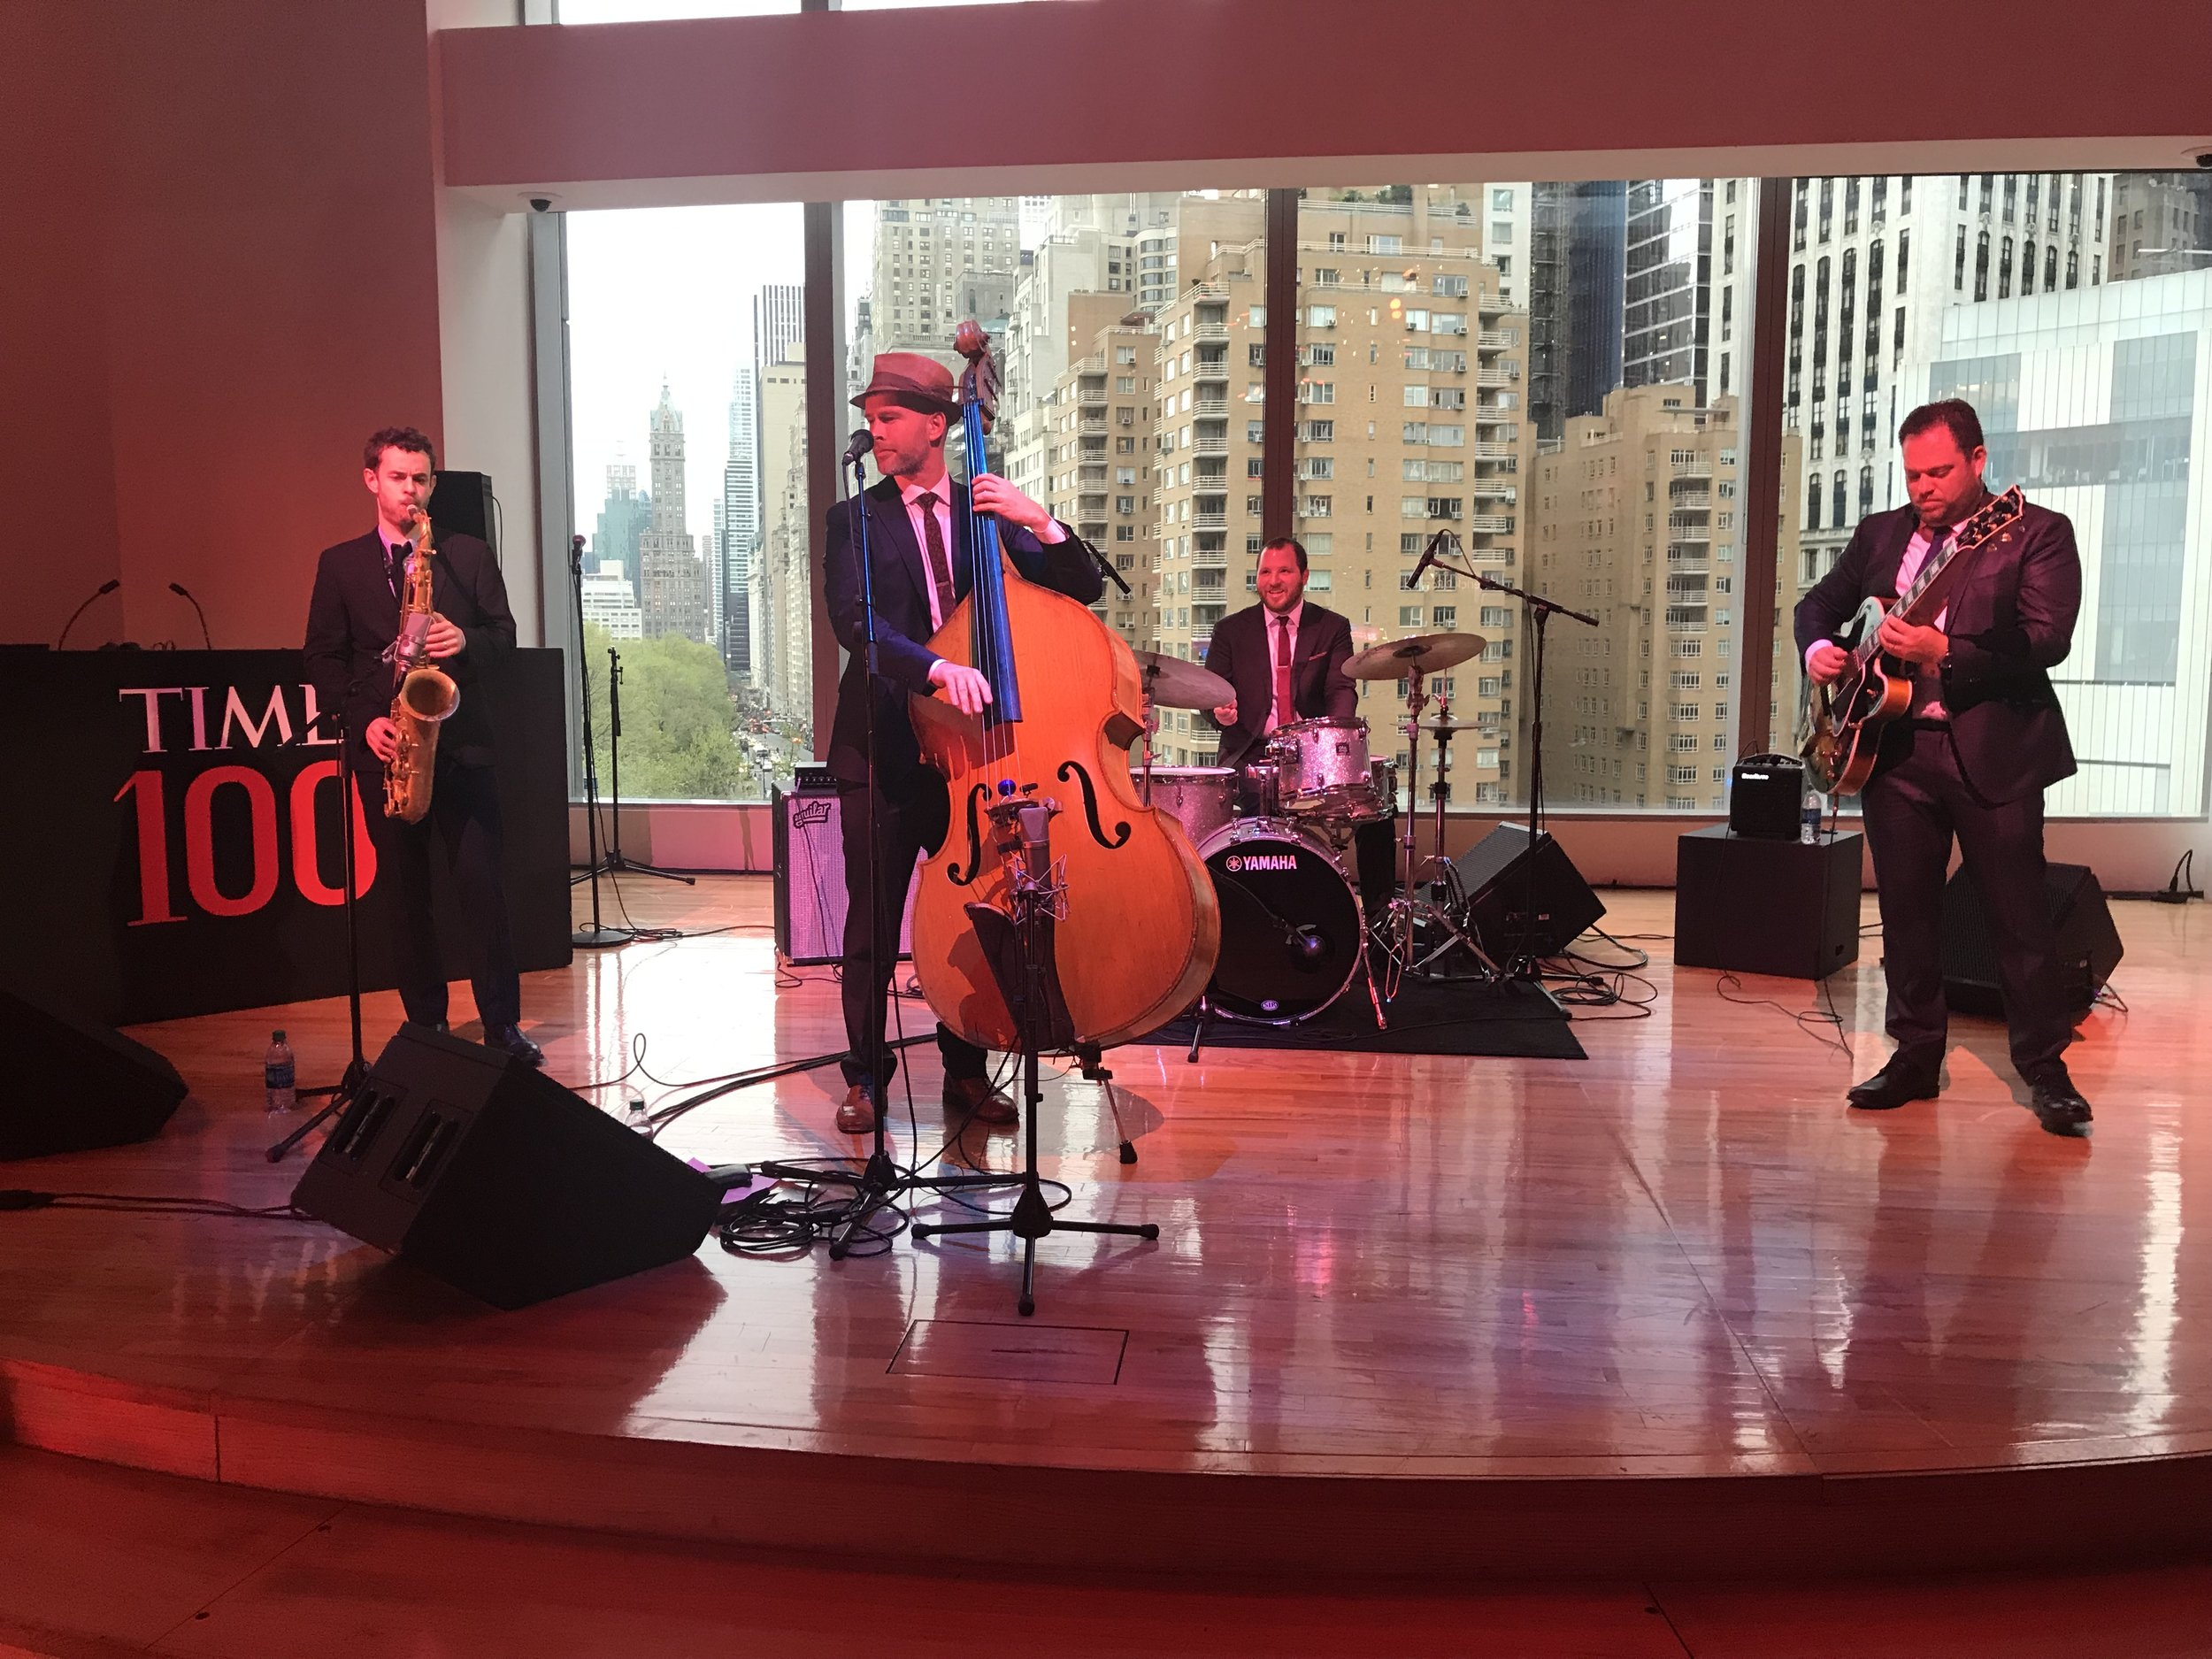 Peter & the Master Keys quartet perform at the TIME 100 gala at the Time Warner building